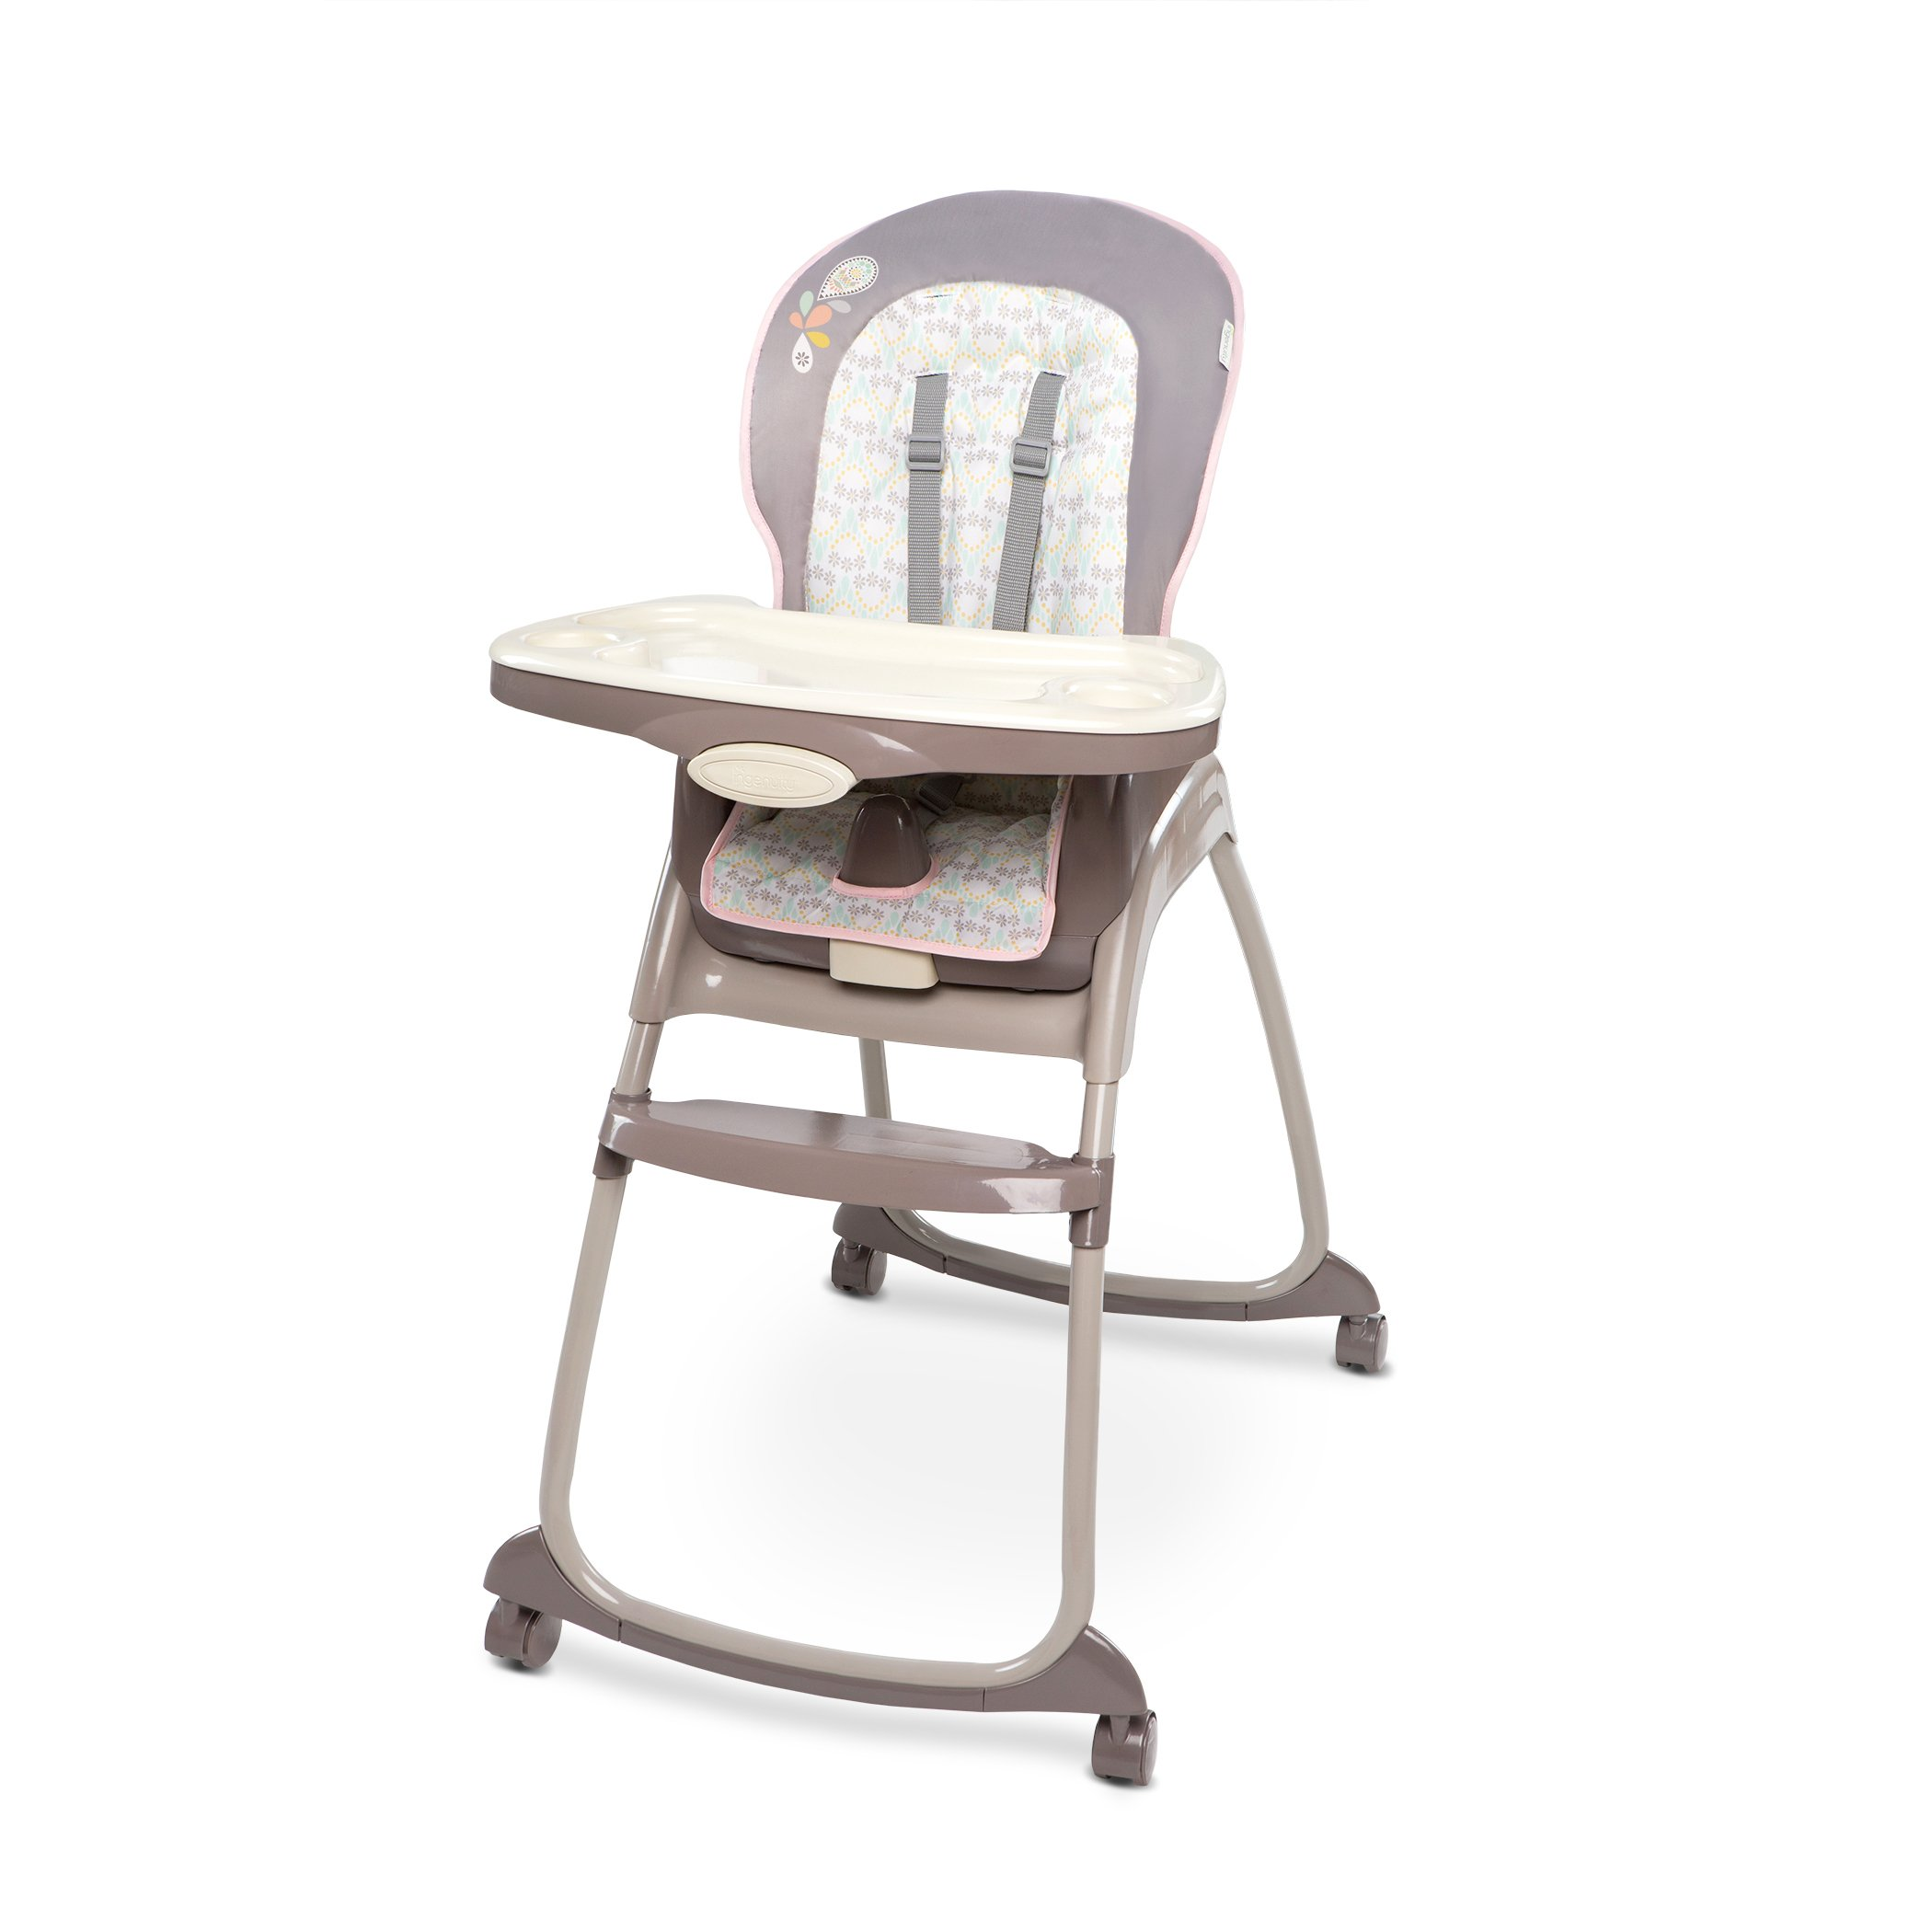 Ingenuity Trio 3-in-1 High Chair, Deluxe Piper by Ingenuity (Image #1)